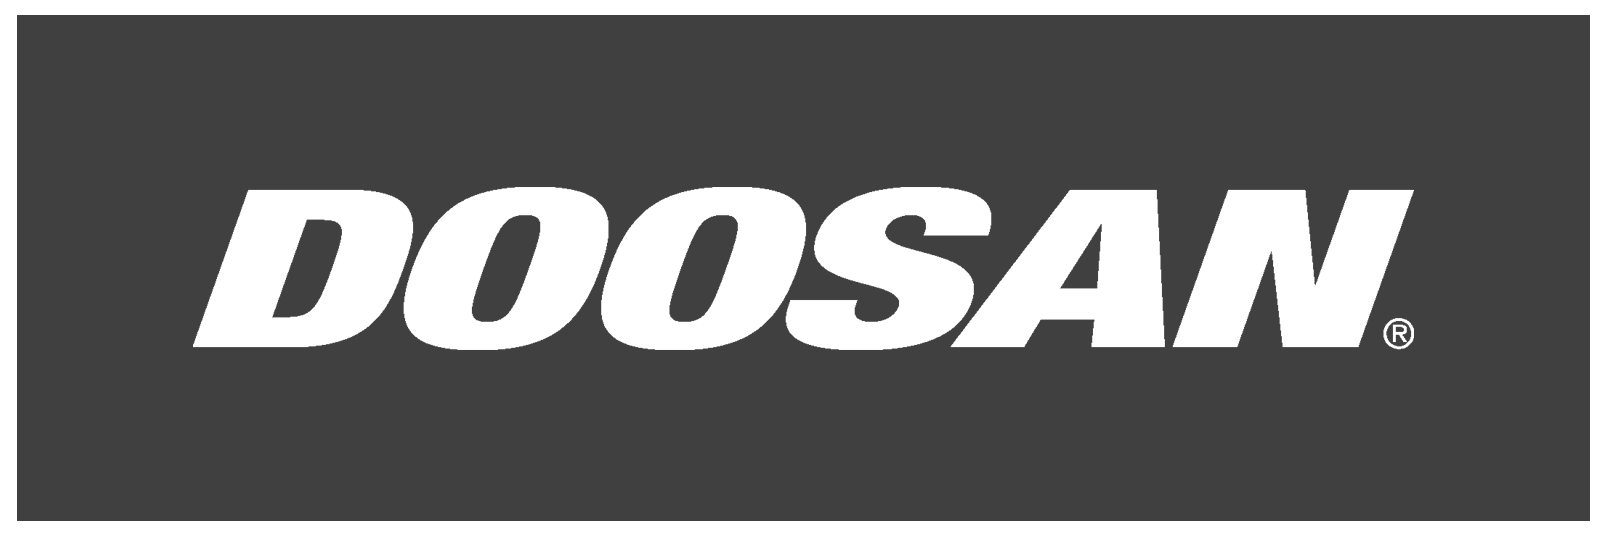 DOOSAN-BLACK-BOX-LOGO.png